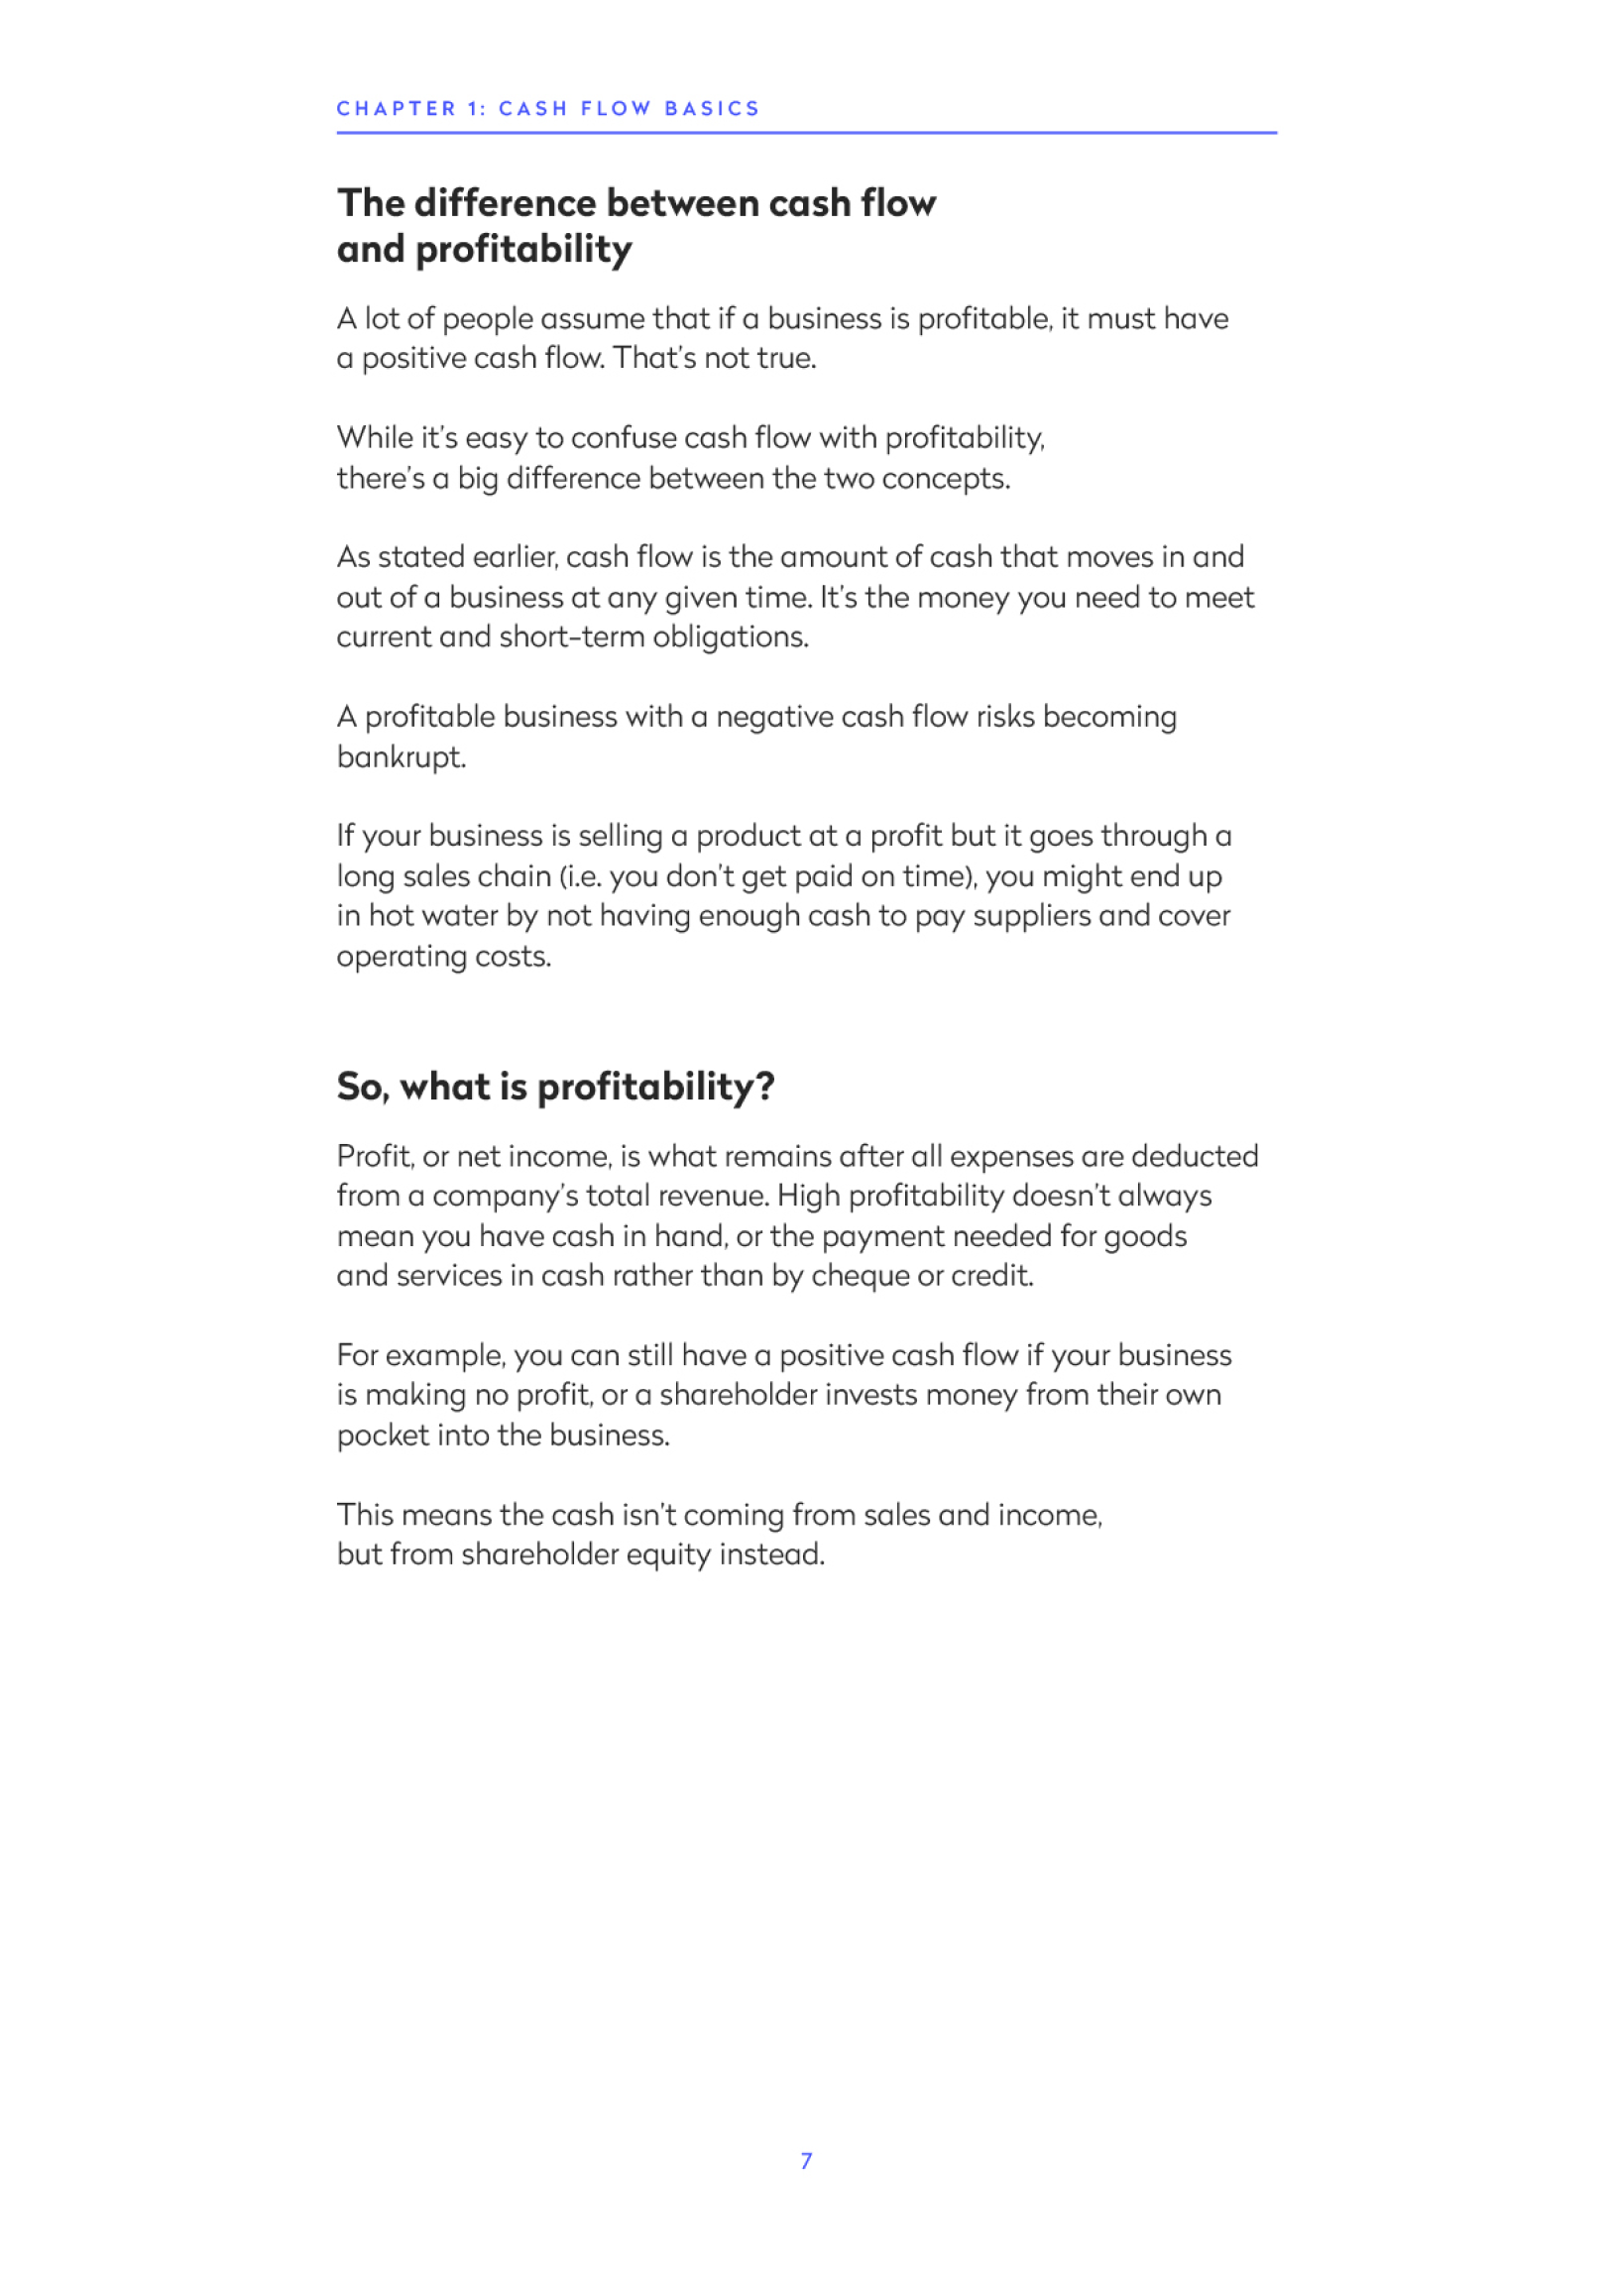 Screenshot from the ebook explaining the difference between cashflow and profitability